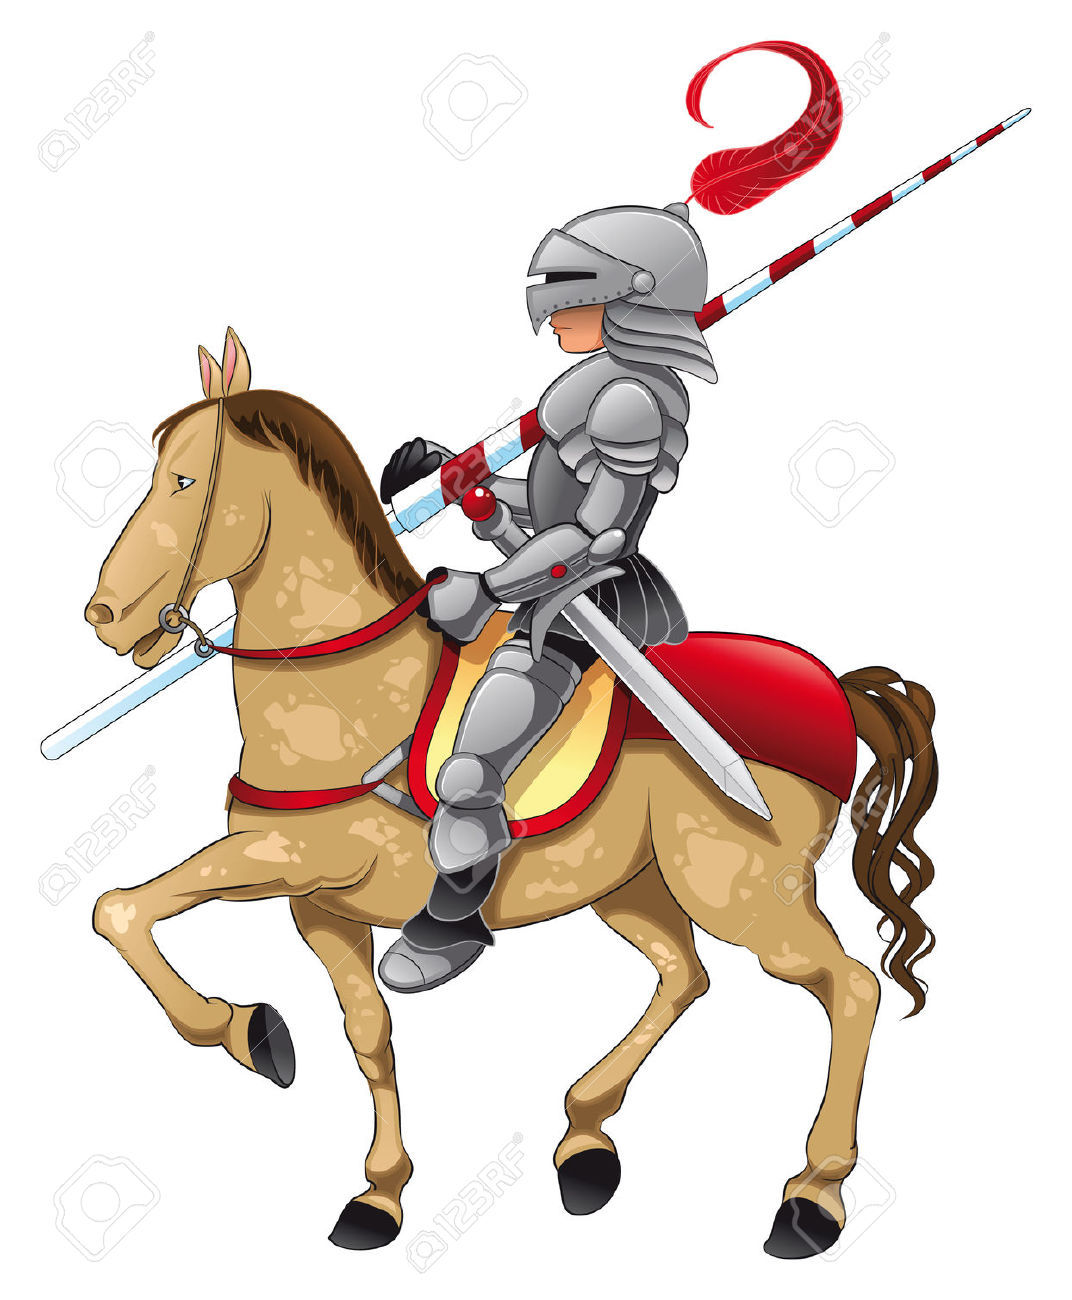 Knight on Horse Image